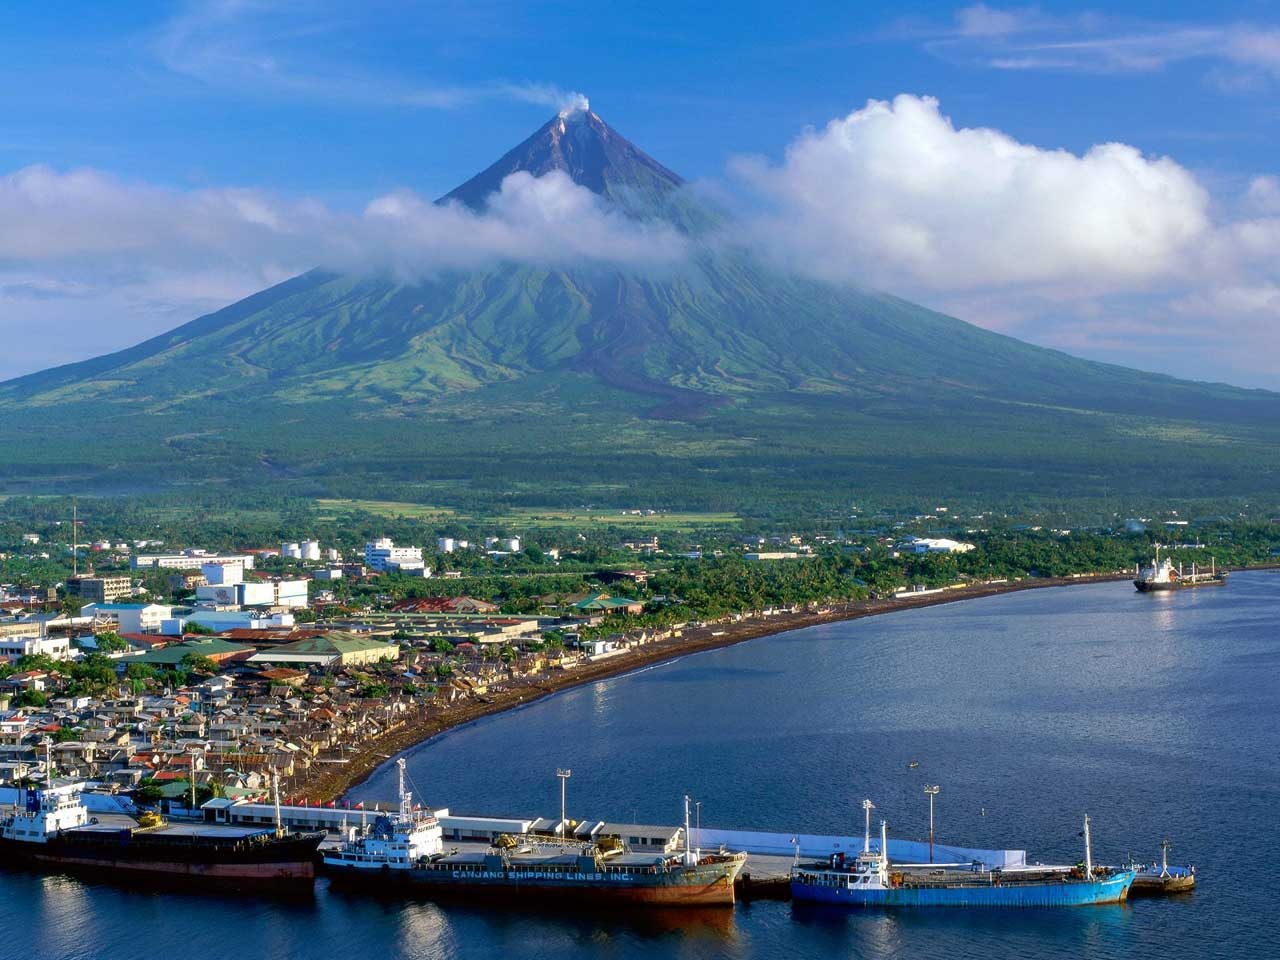 http://2.bp.blogspot.com/-7FniMjVZFgk/T3nEoH4I4RI/AAAAAAAAABY/kX8fiUo6K2Y/s1600/beautiful_mount_mayon_megazpi_city_muzon_islands_philippines_wallpaper.jpg